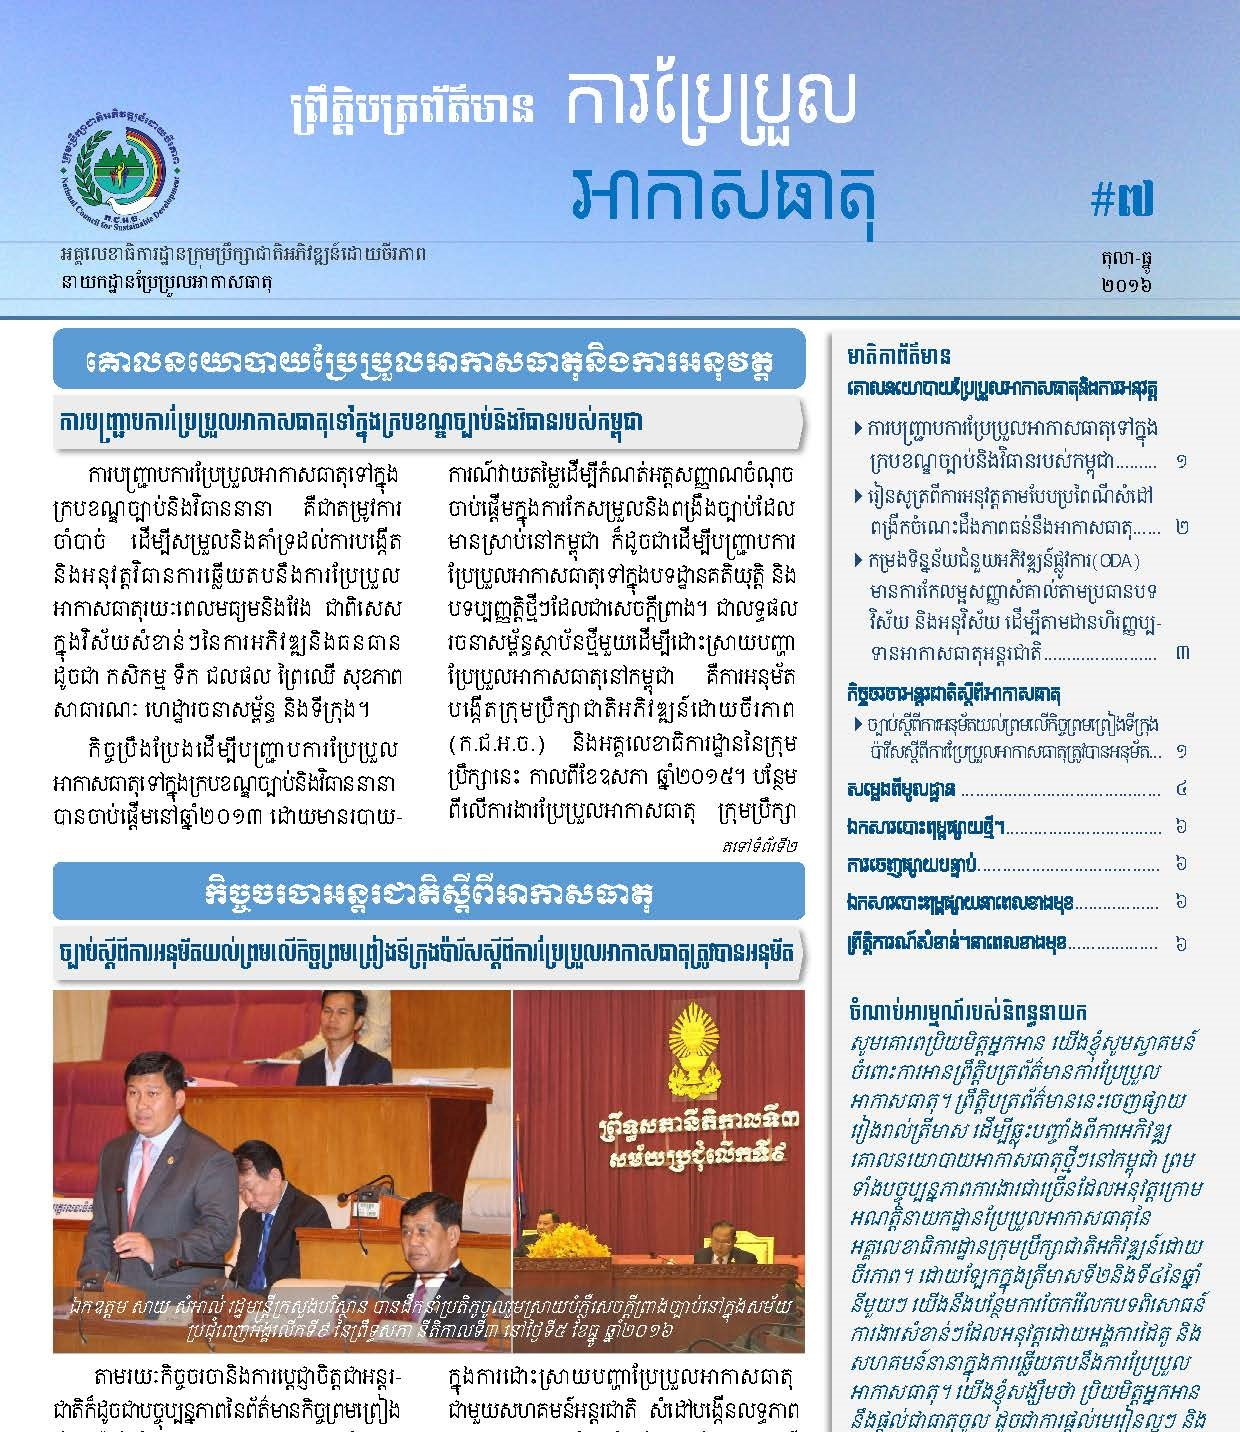 Newsletter No.7 Kh Page 1 1